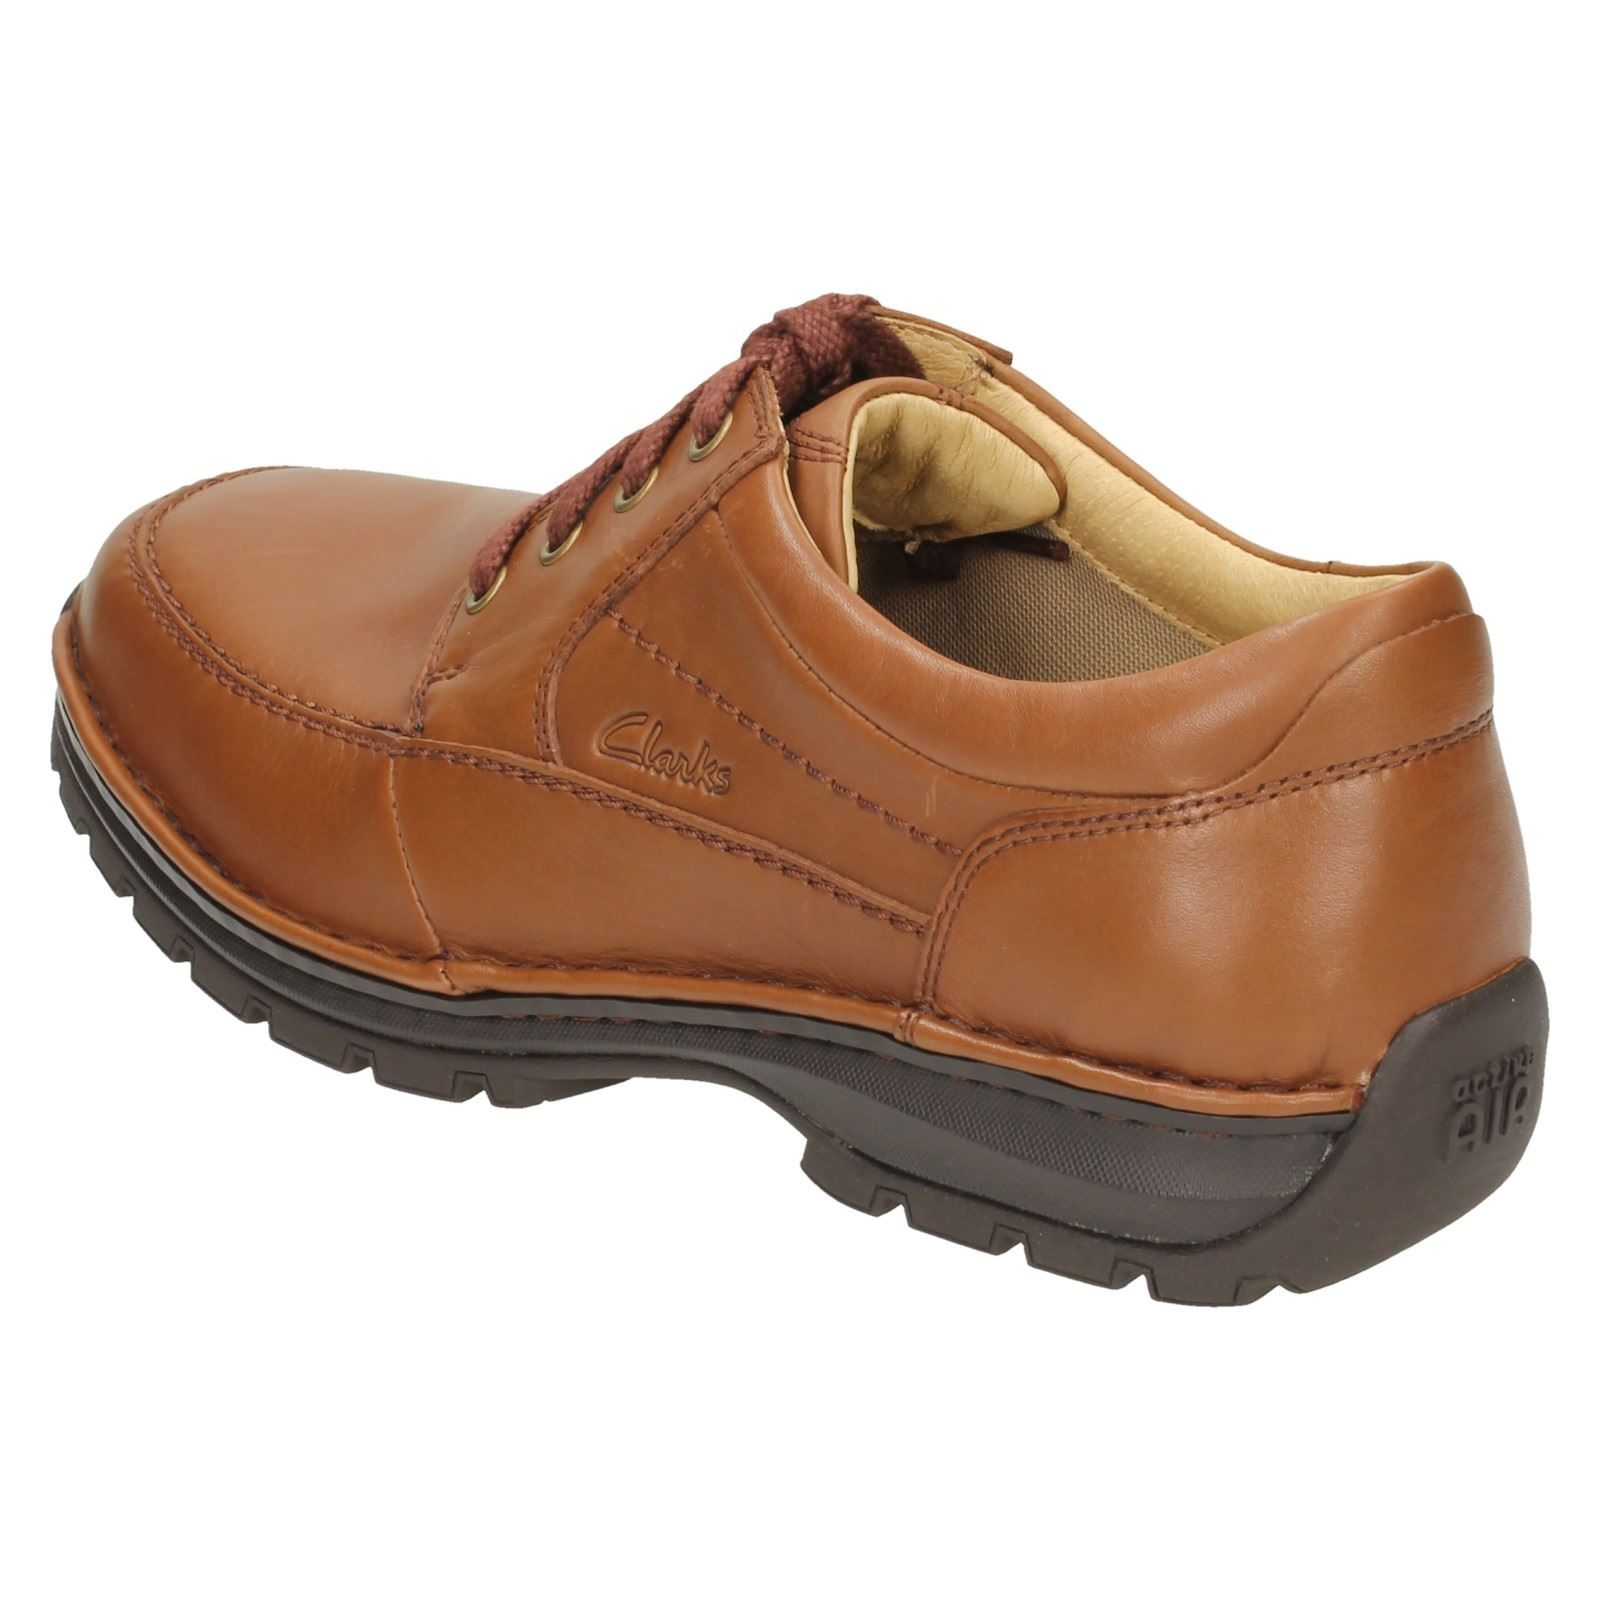 Clarks Mens Active Air Casual Shoes